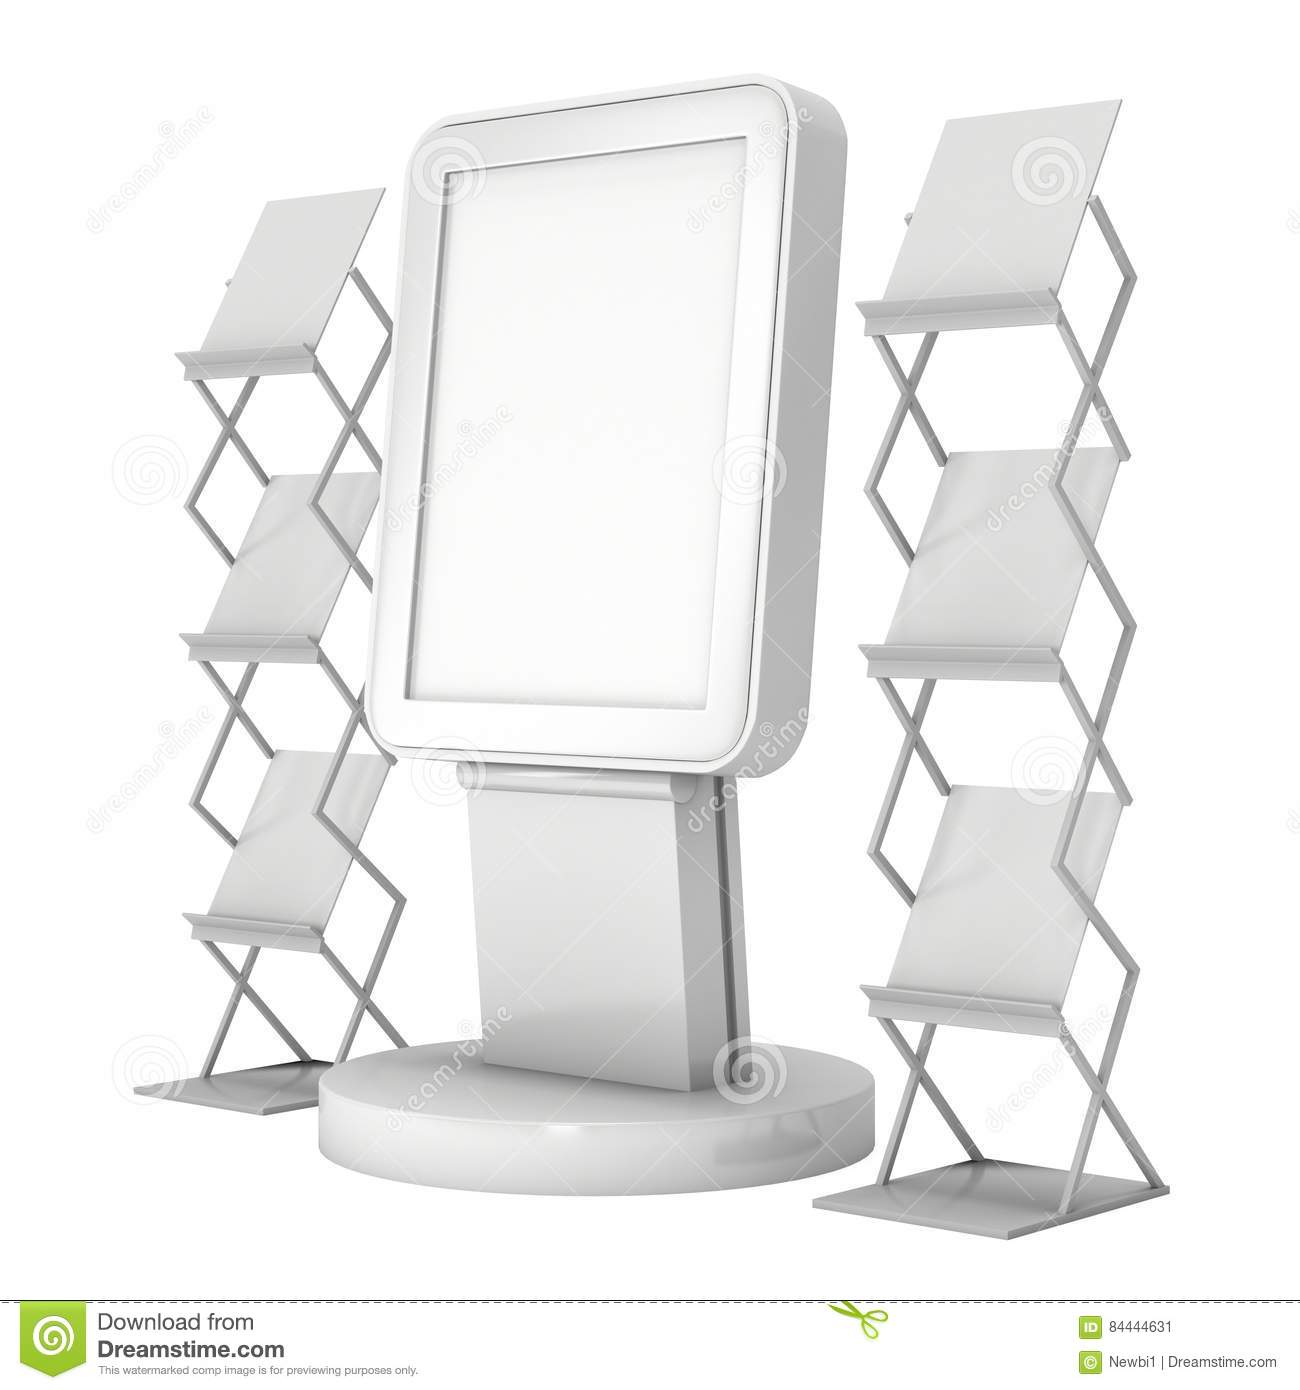 lcd display stand and magazine rack stock image image of isolated kiosk 84444631